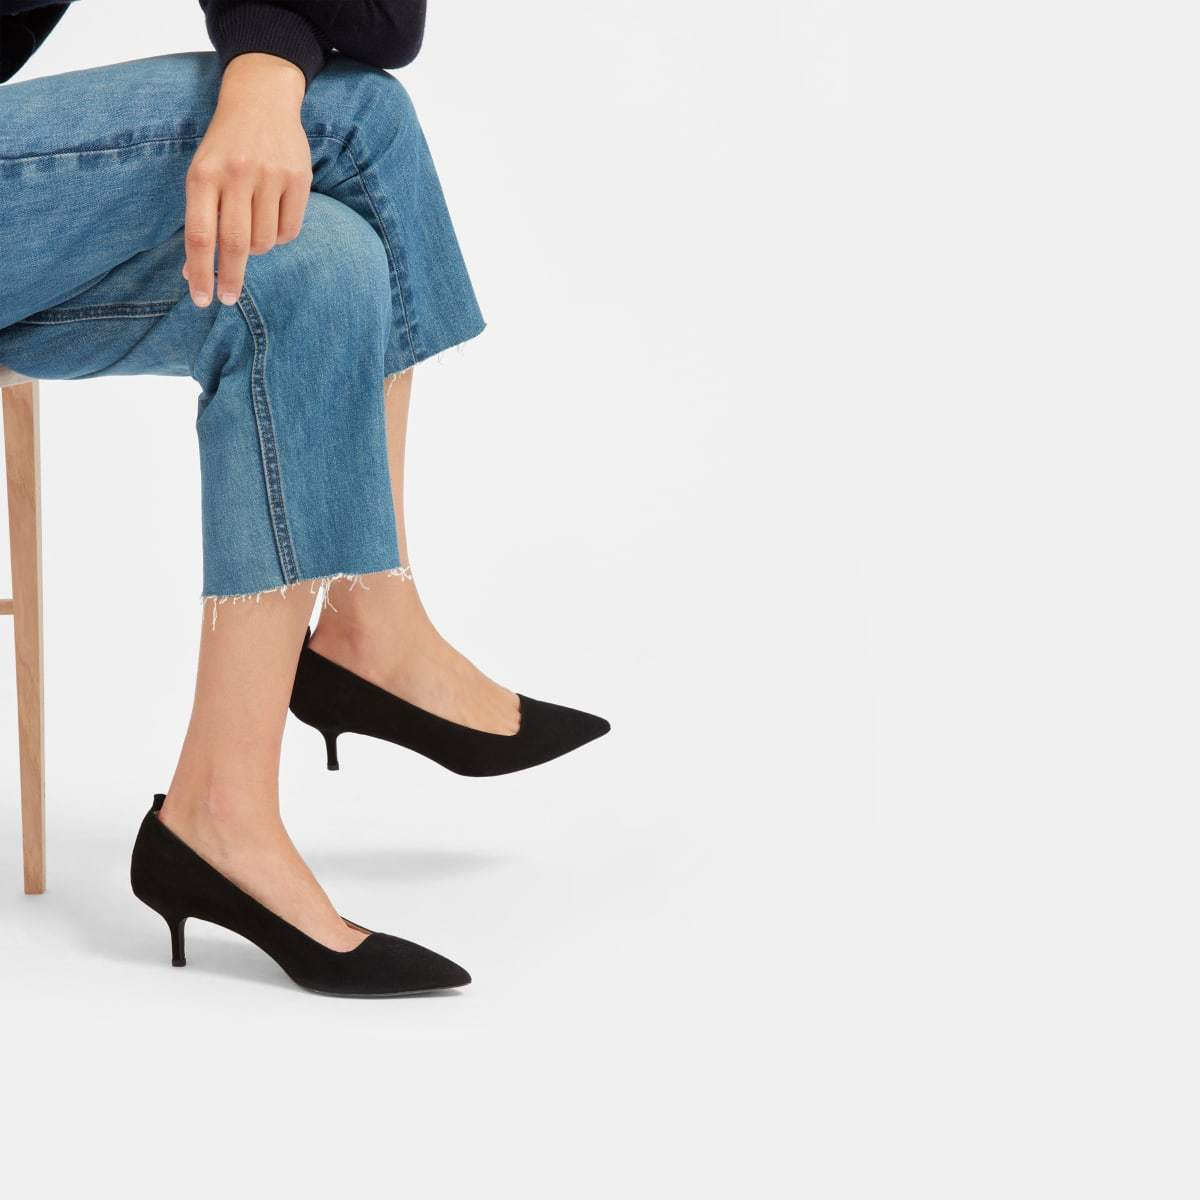 shop everlane shoes